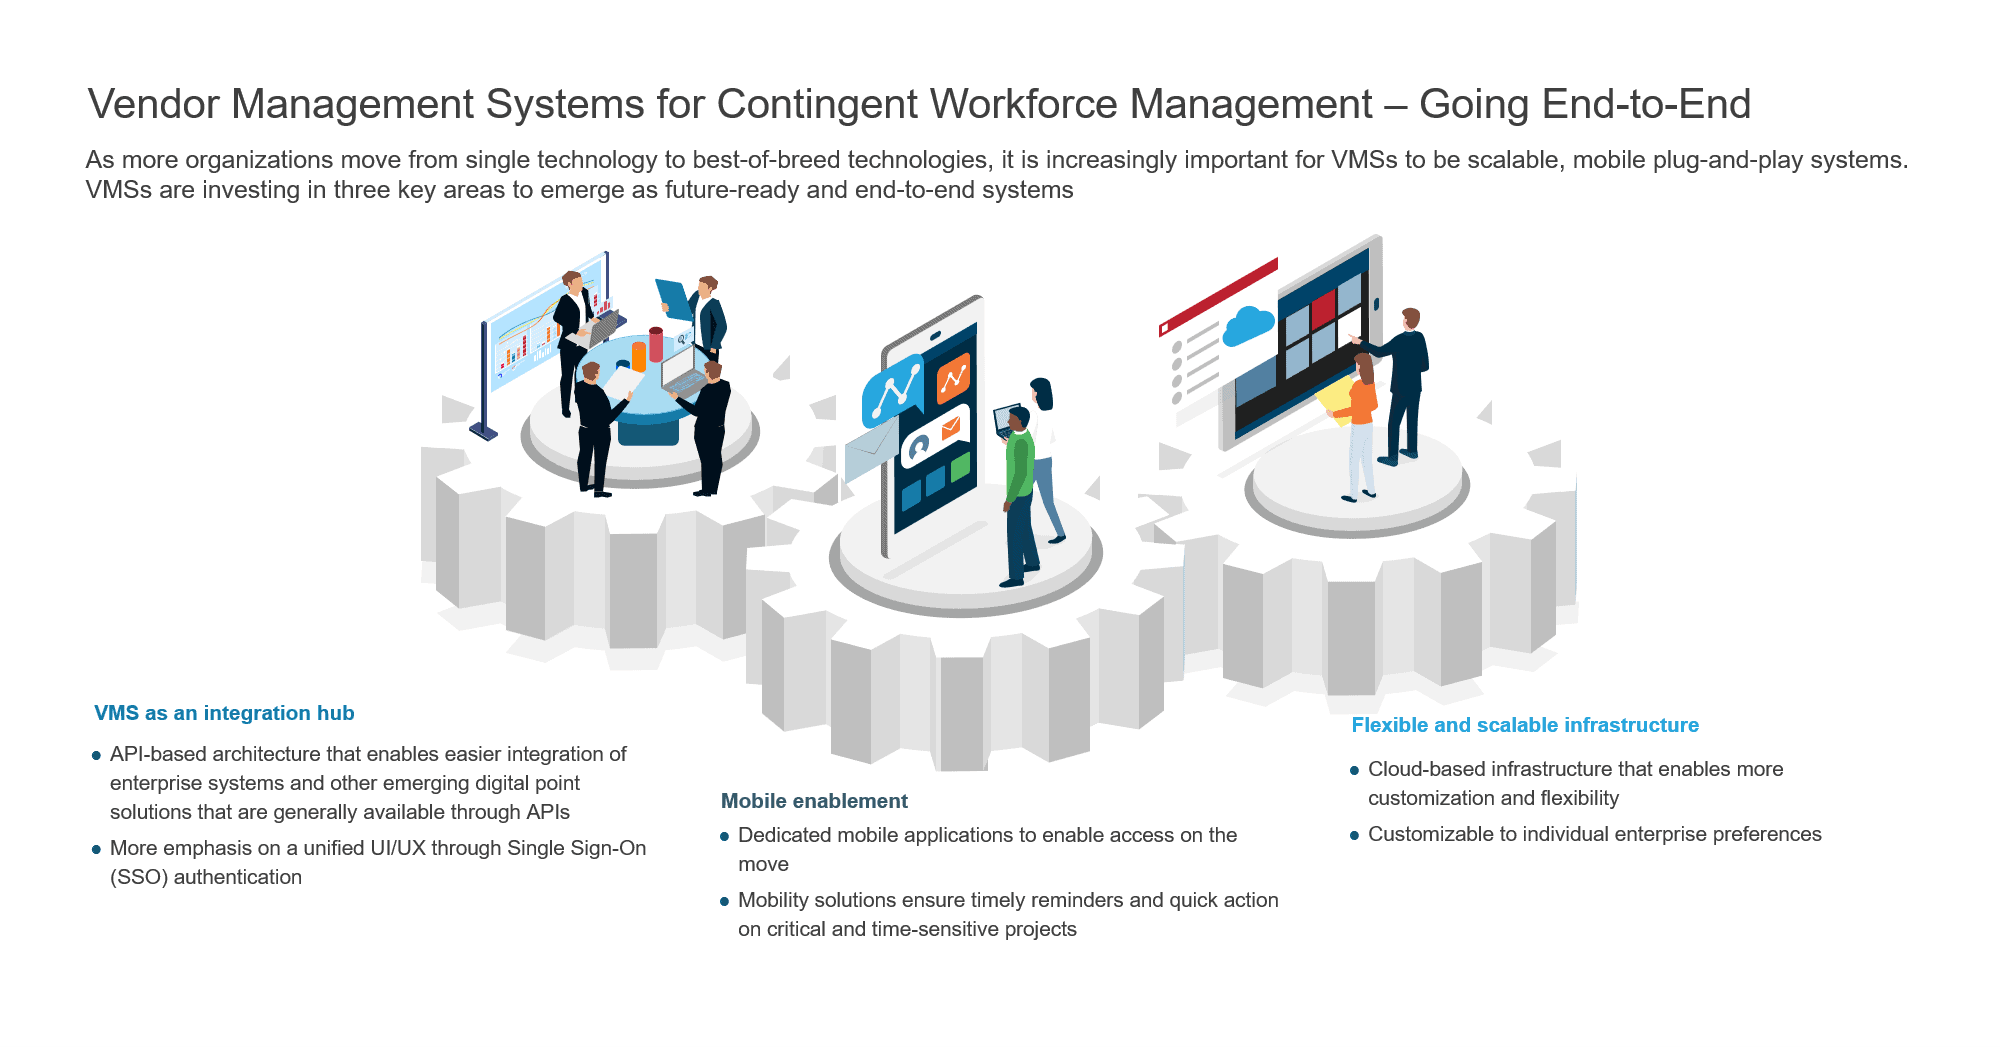 Vendor Management Systems for Contingent Workforce Management – Going End-to-End